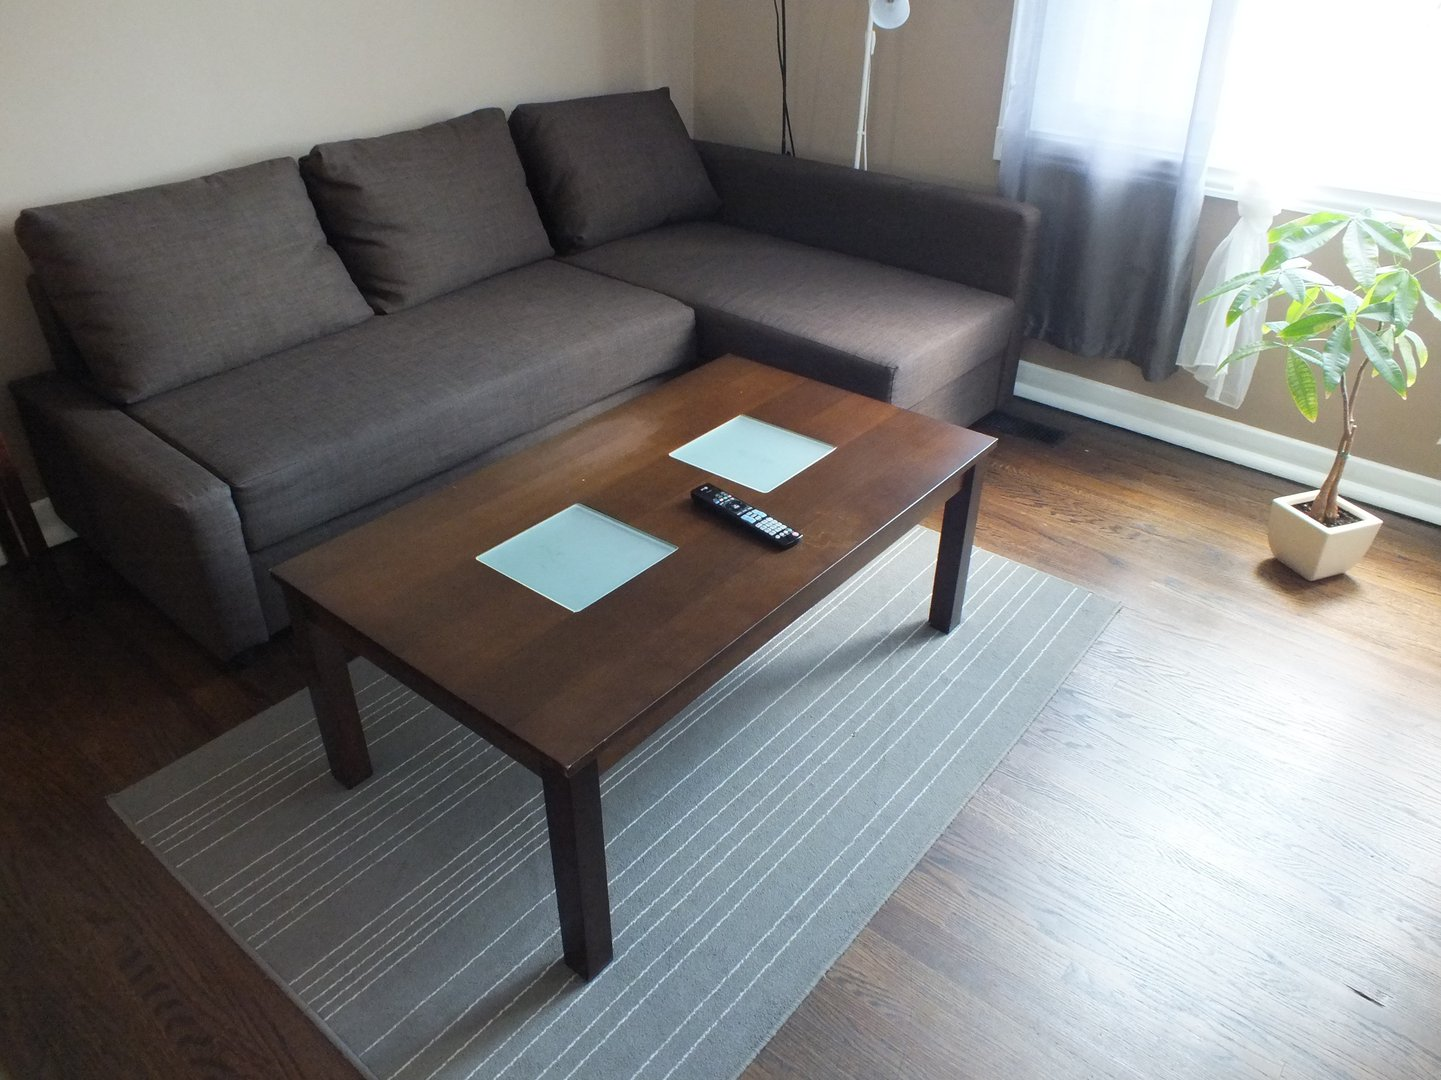 Apartment for rent at 2374 Kingston Rd, Scarborough, ON.